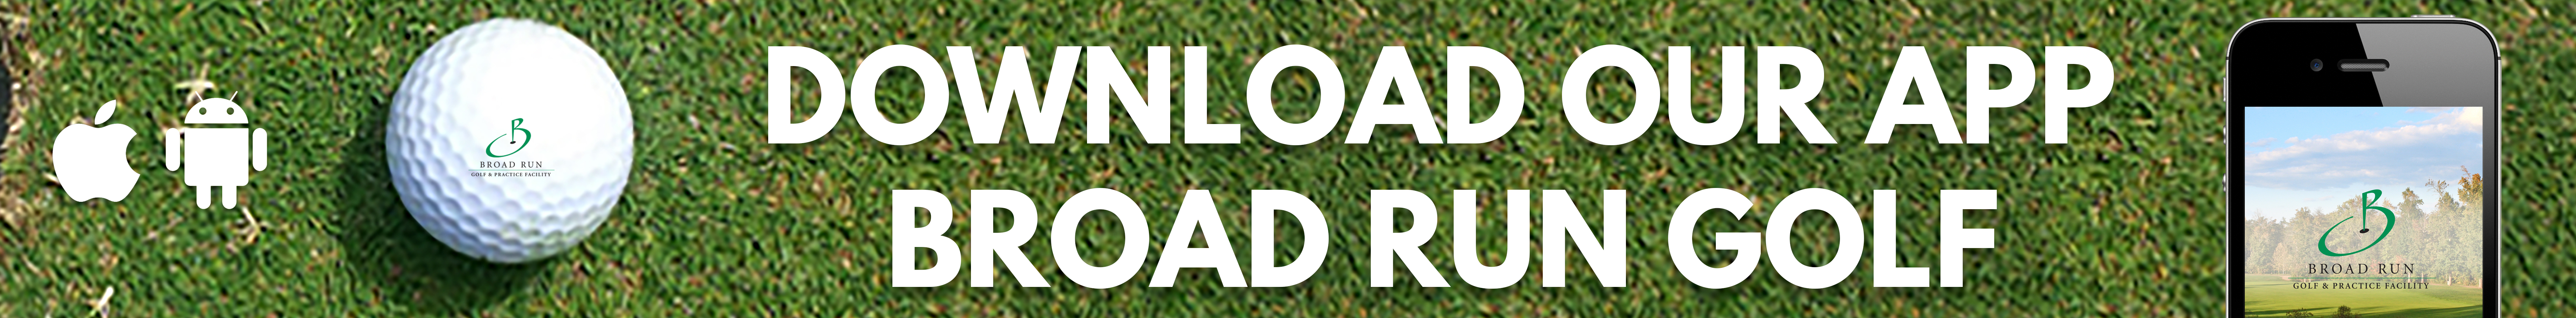 Broad Run Golf App